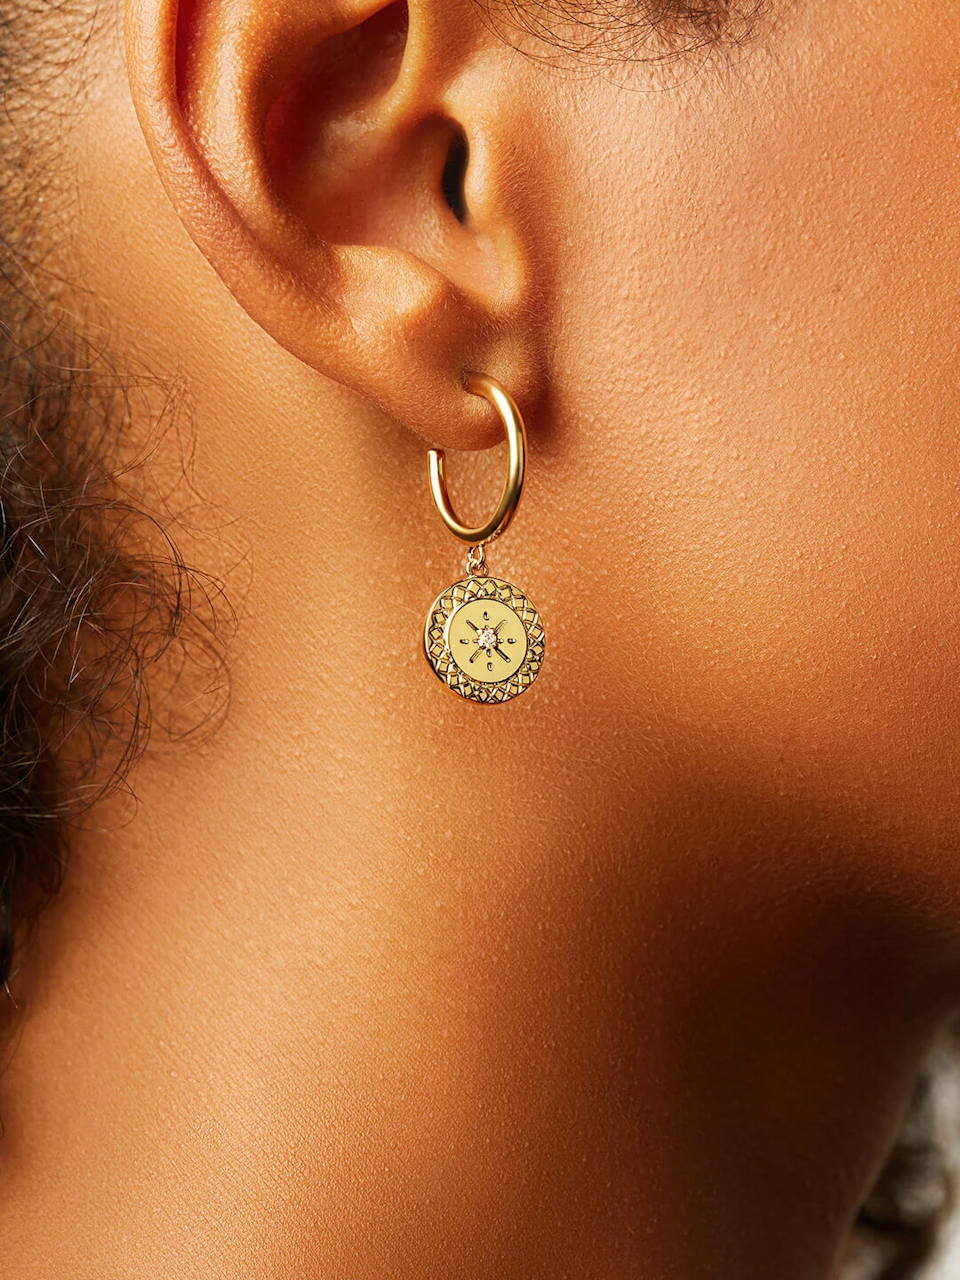 "<h2>Gelt Free</h2><br>Or you can go the fashion route with a 14K gold-plated coin earring set from the sustainable direct-to-consumer jewelry brand, Ana Luisa.<br><br><strong>Ana Luisa</strong> Coin Hoop Earrings, $, available at <a href=""https://go.skimresources.com/?id=30283X879131&url=https%3A%2F%2Fwww.analuisa.com%2Fproducts%2Fcoin-hoop-earrings-hazel"" rel=""nofollow noopener"" target=""_blank"" data-ylk=""slk:Ana Luisa"" class=""link rapid-noclick-resp"">Ana Luisa</a>"